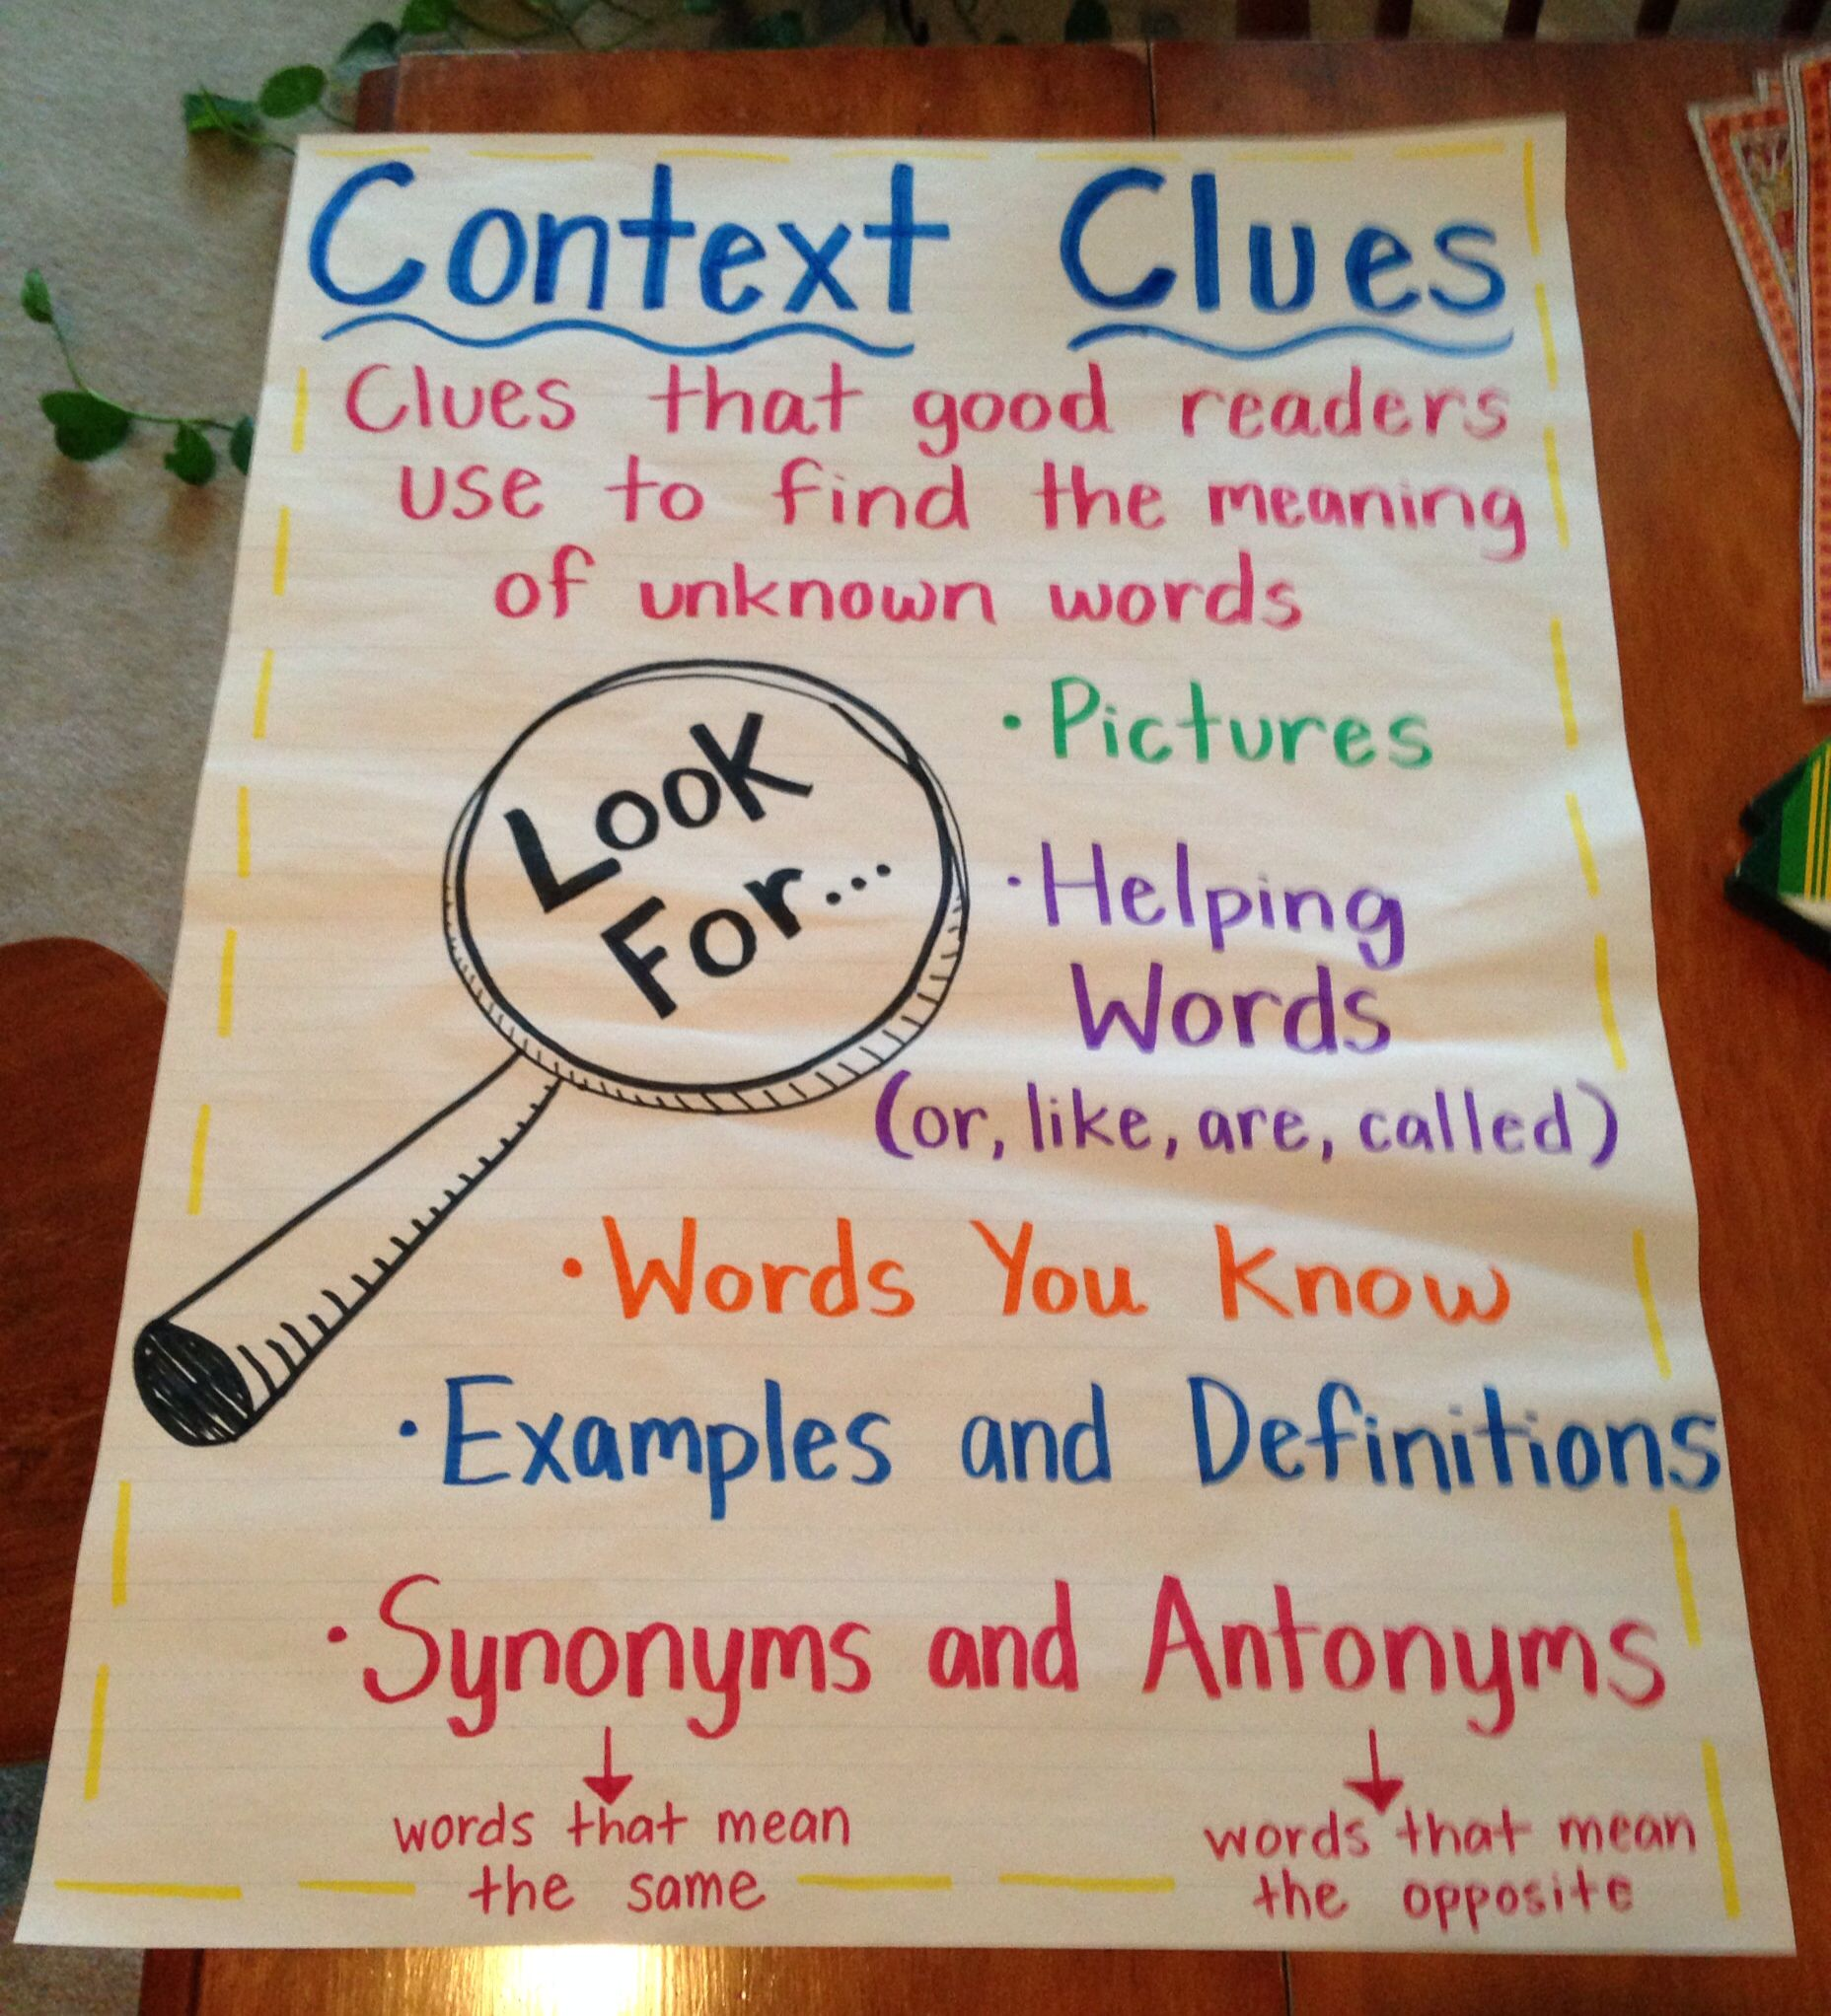 Context Clues Anchor Charts by Fun with Language | TpT